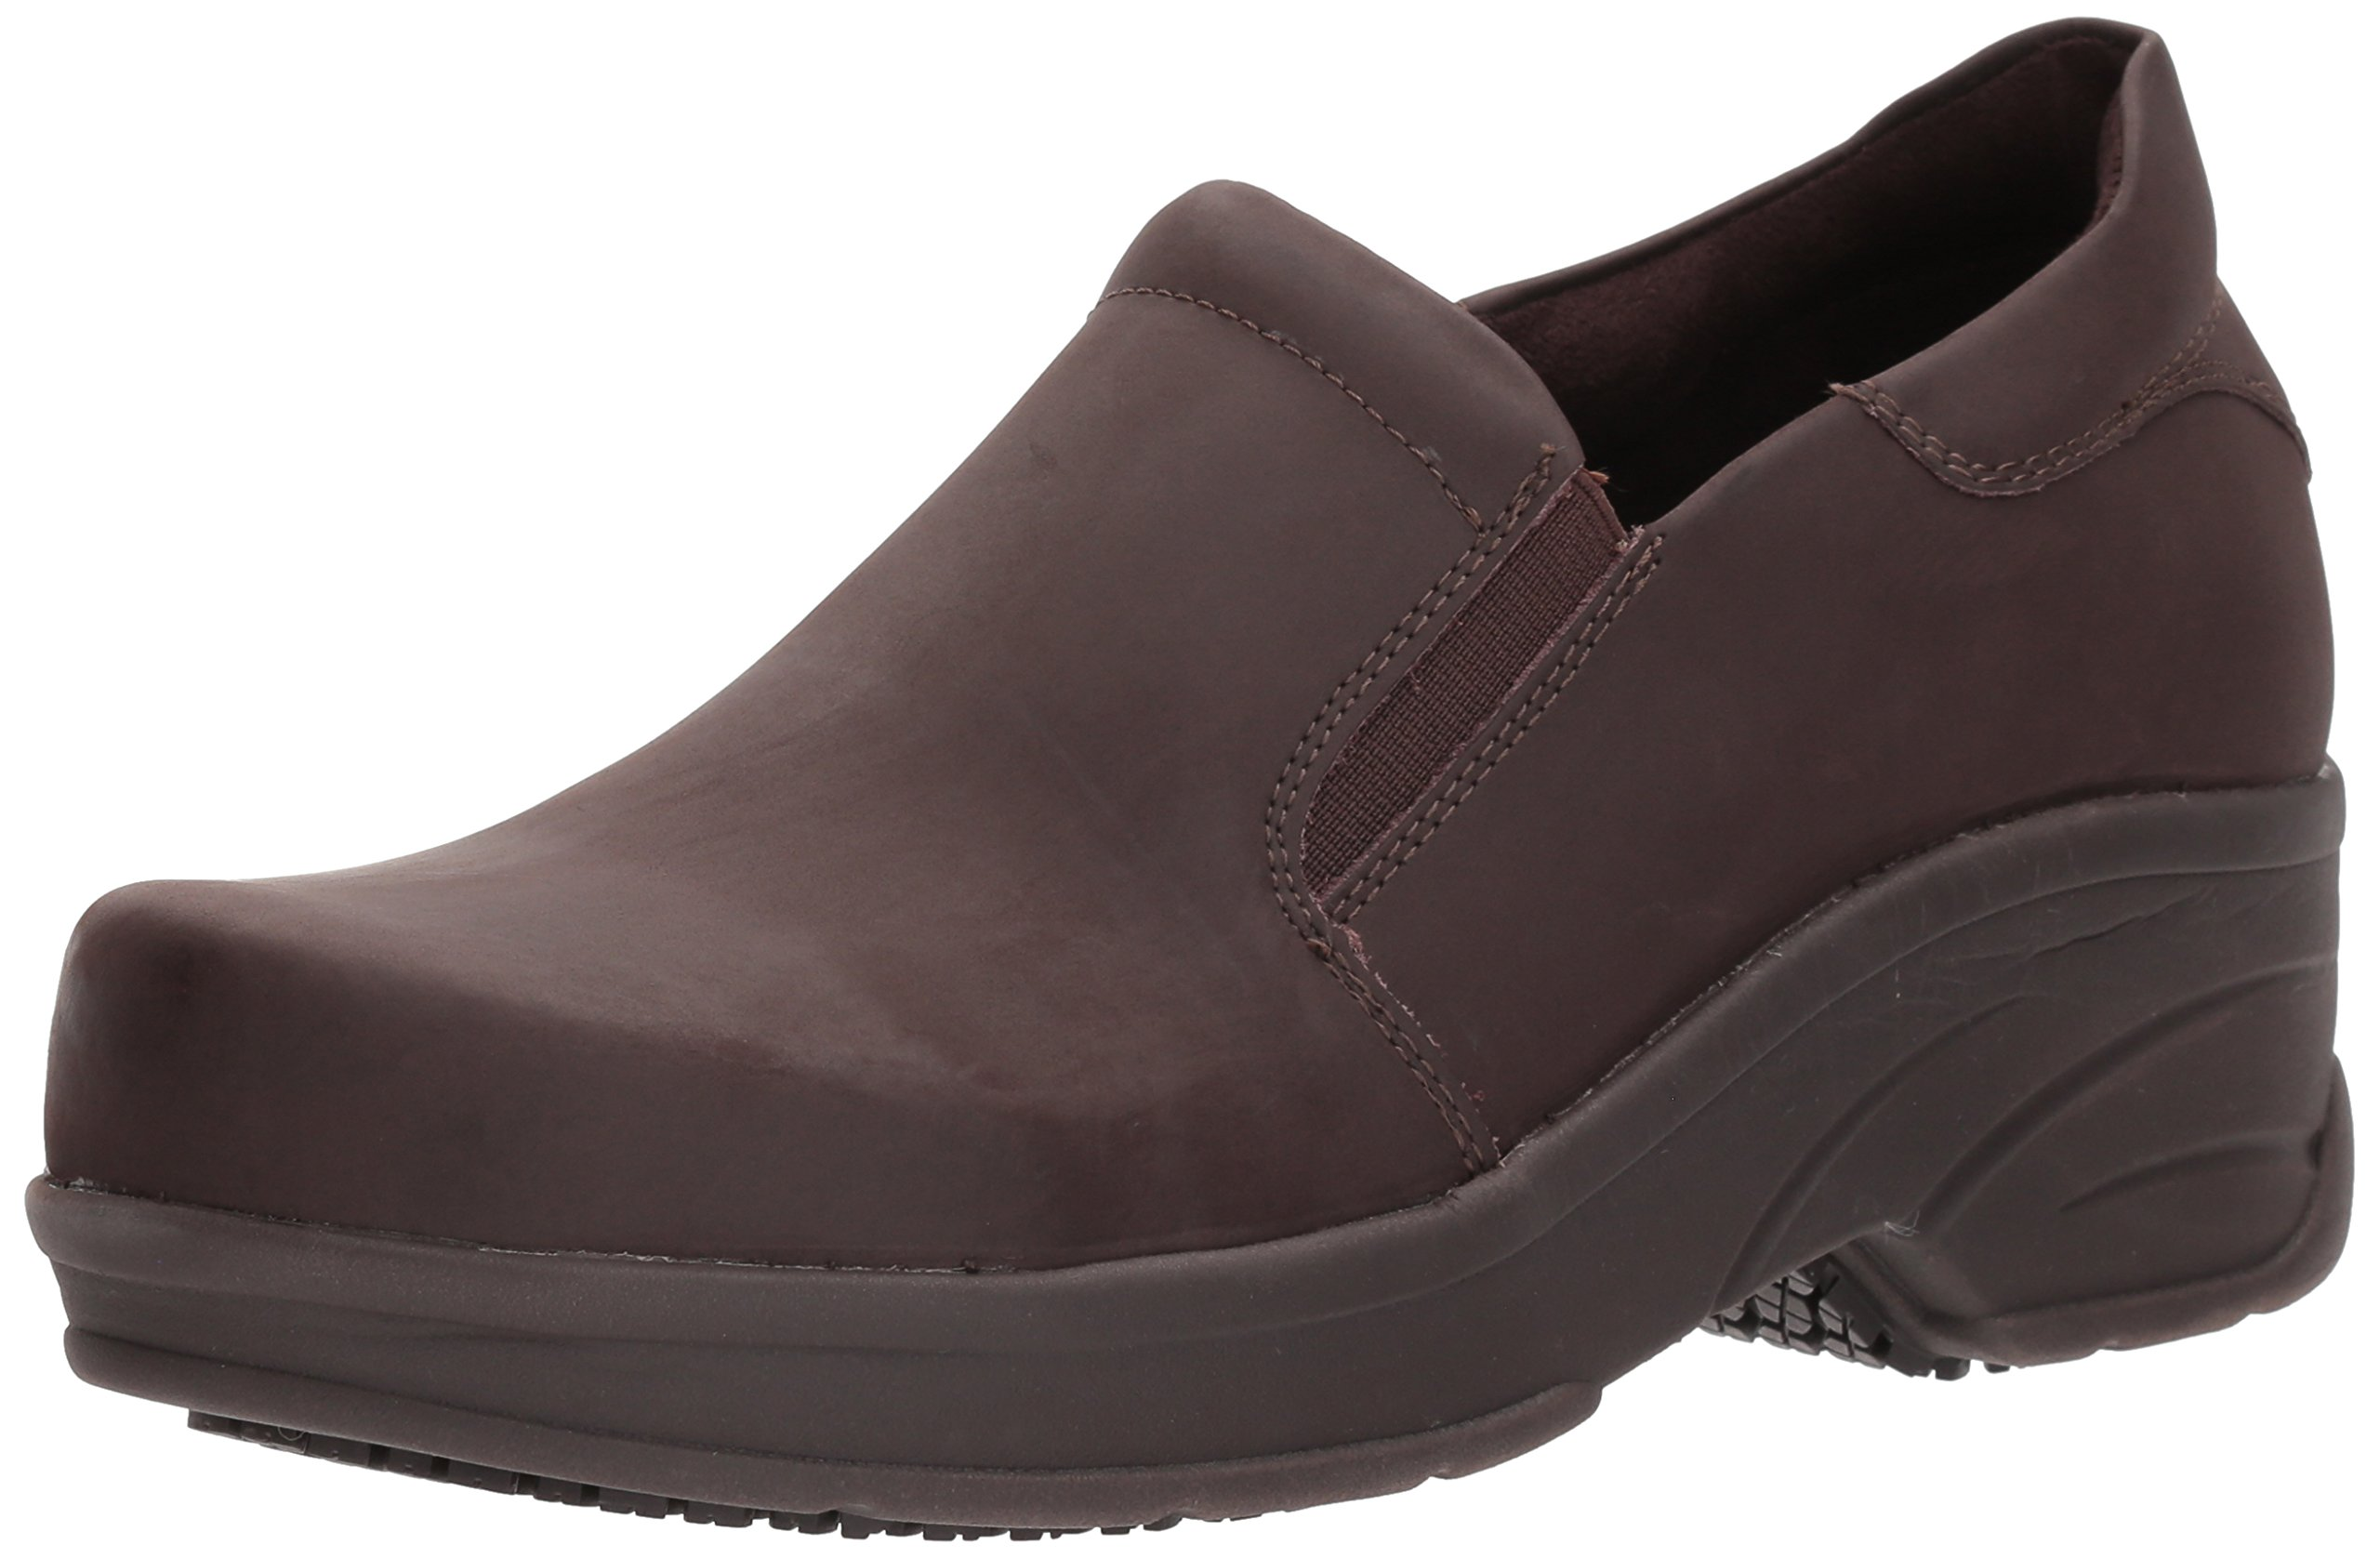 Easy Works Women's Appreciate Health Care Professional Shoe, Brown nub, 6 W US by Easy Works